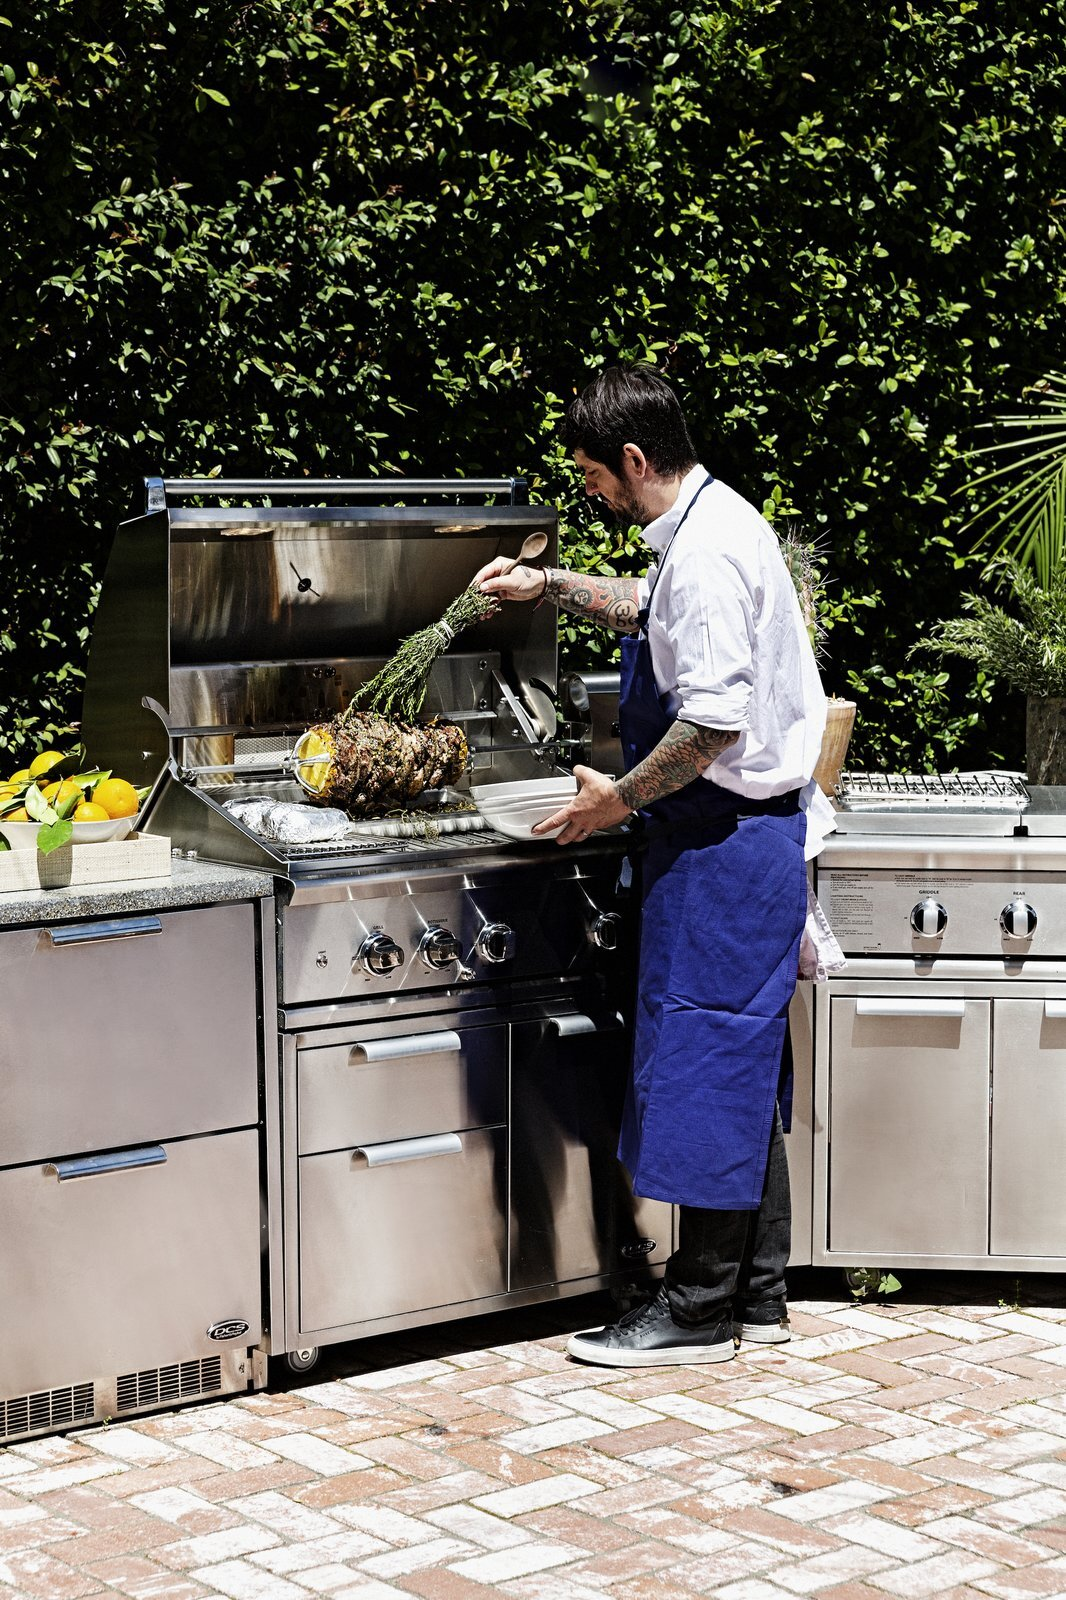 Chef Ludo preparing lamb shawarma on the grill's rotisserie—which can hold up to 50 pounds of meat—while roasting vegetables on the grills other surfaces.